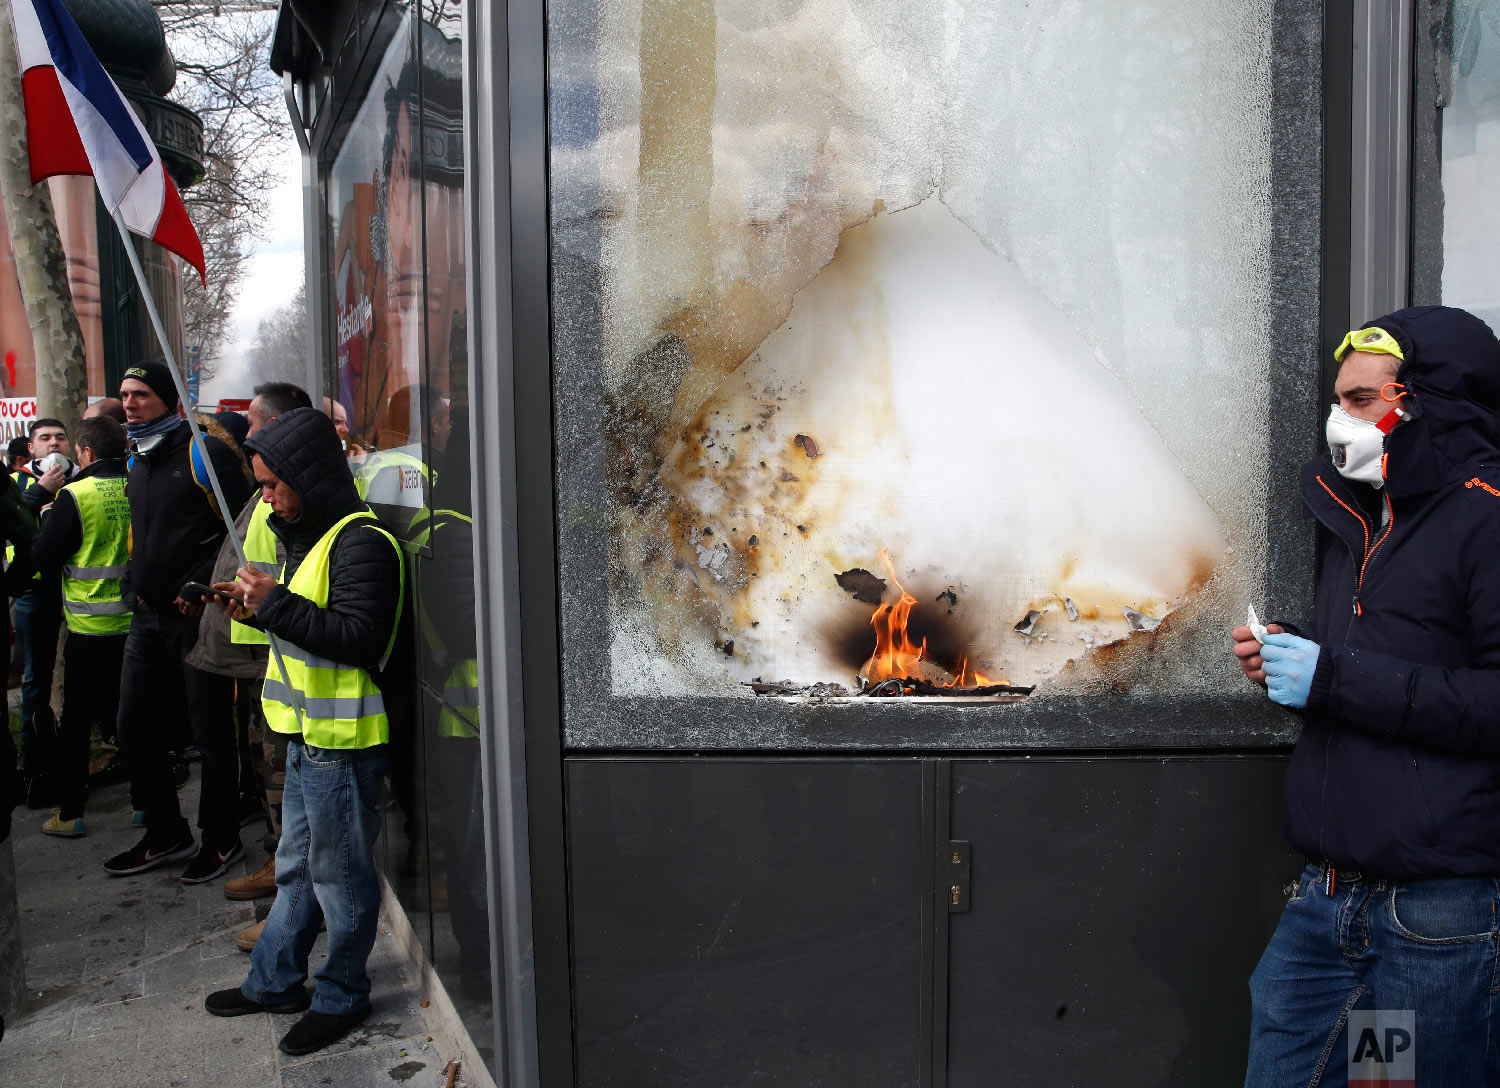 Yellow vests protesters stand by a damages shop during a demonstration, March 16, 2019. (AP Photo/Christophe Ena)